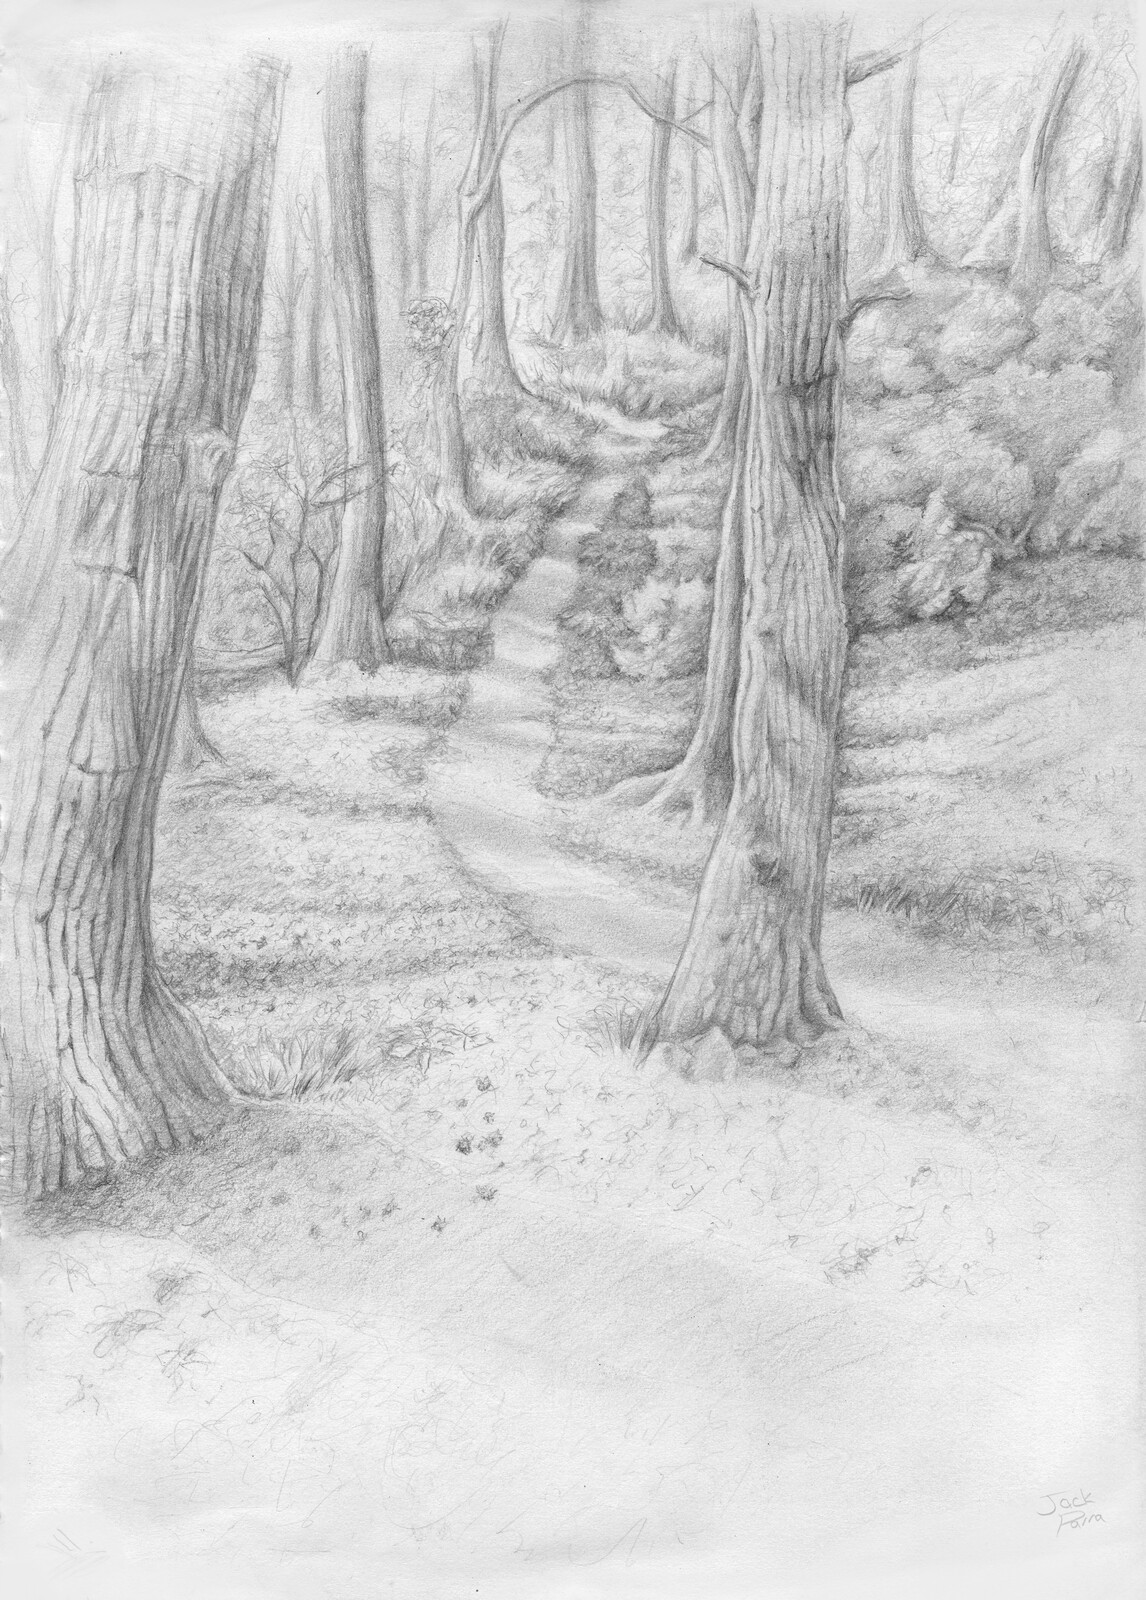 County Park near me. One of my Numerous drawings continuing my fascination with Paths.